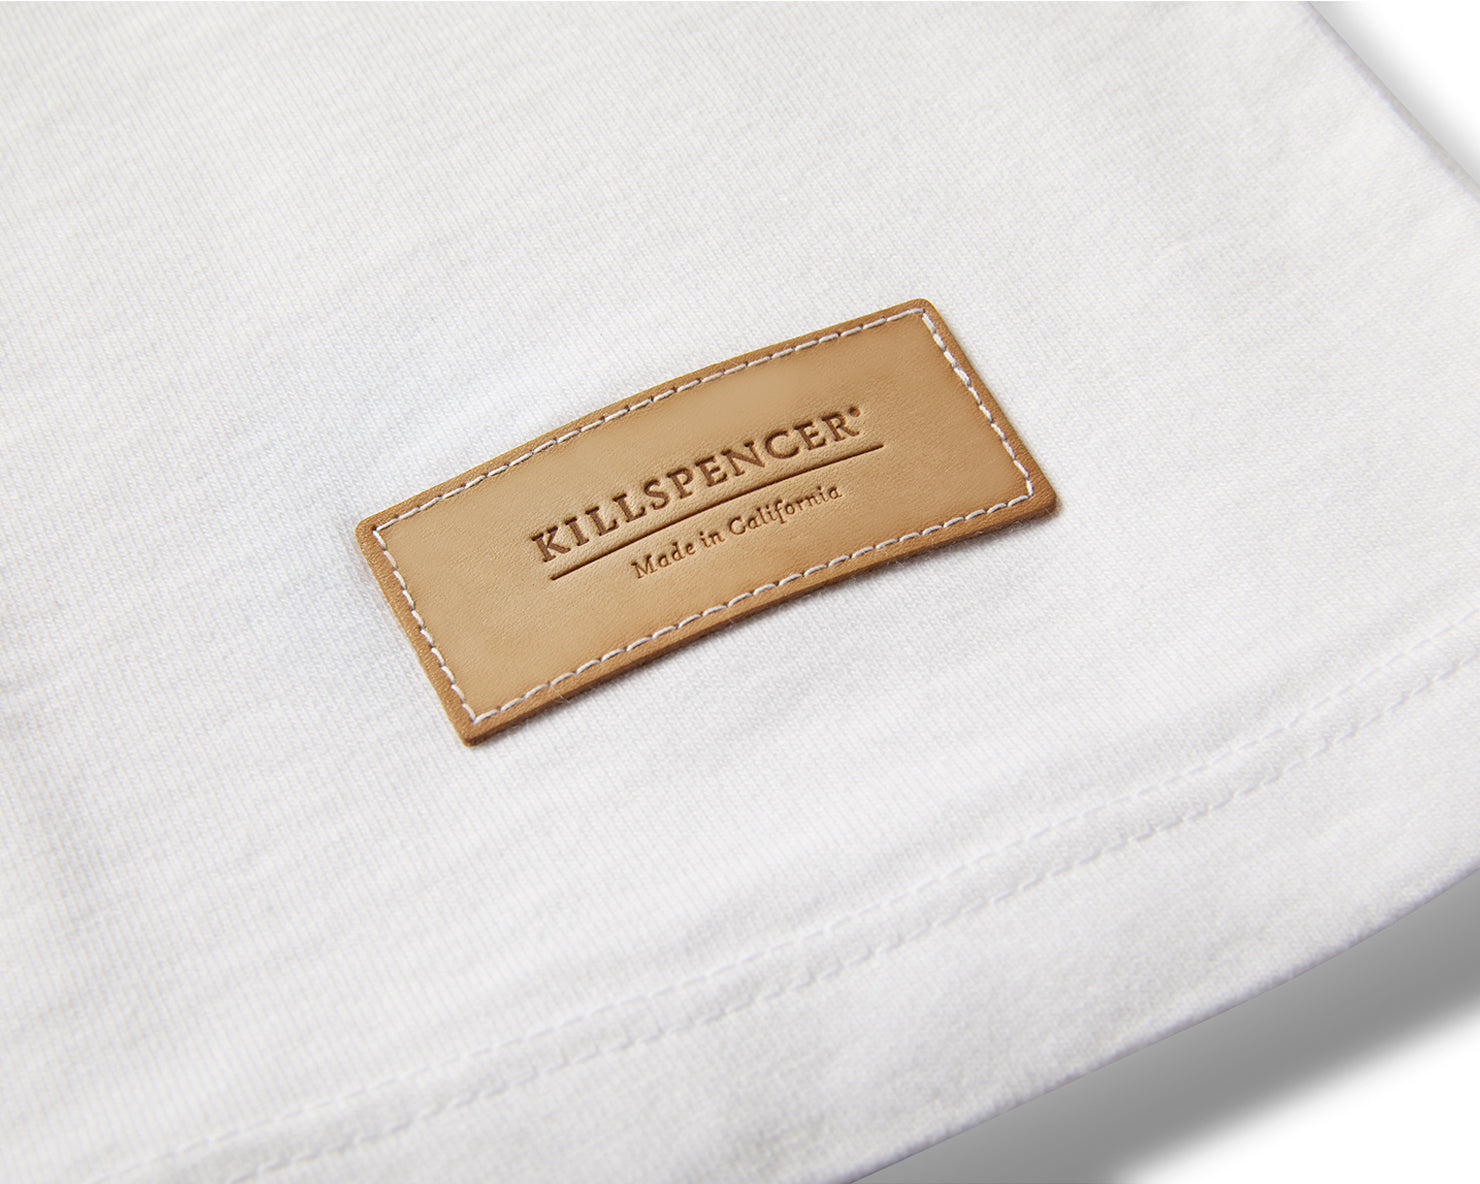 CREWNECK T-SHIRT | KILLSPENCER® - White Cotton